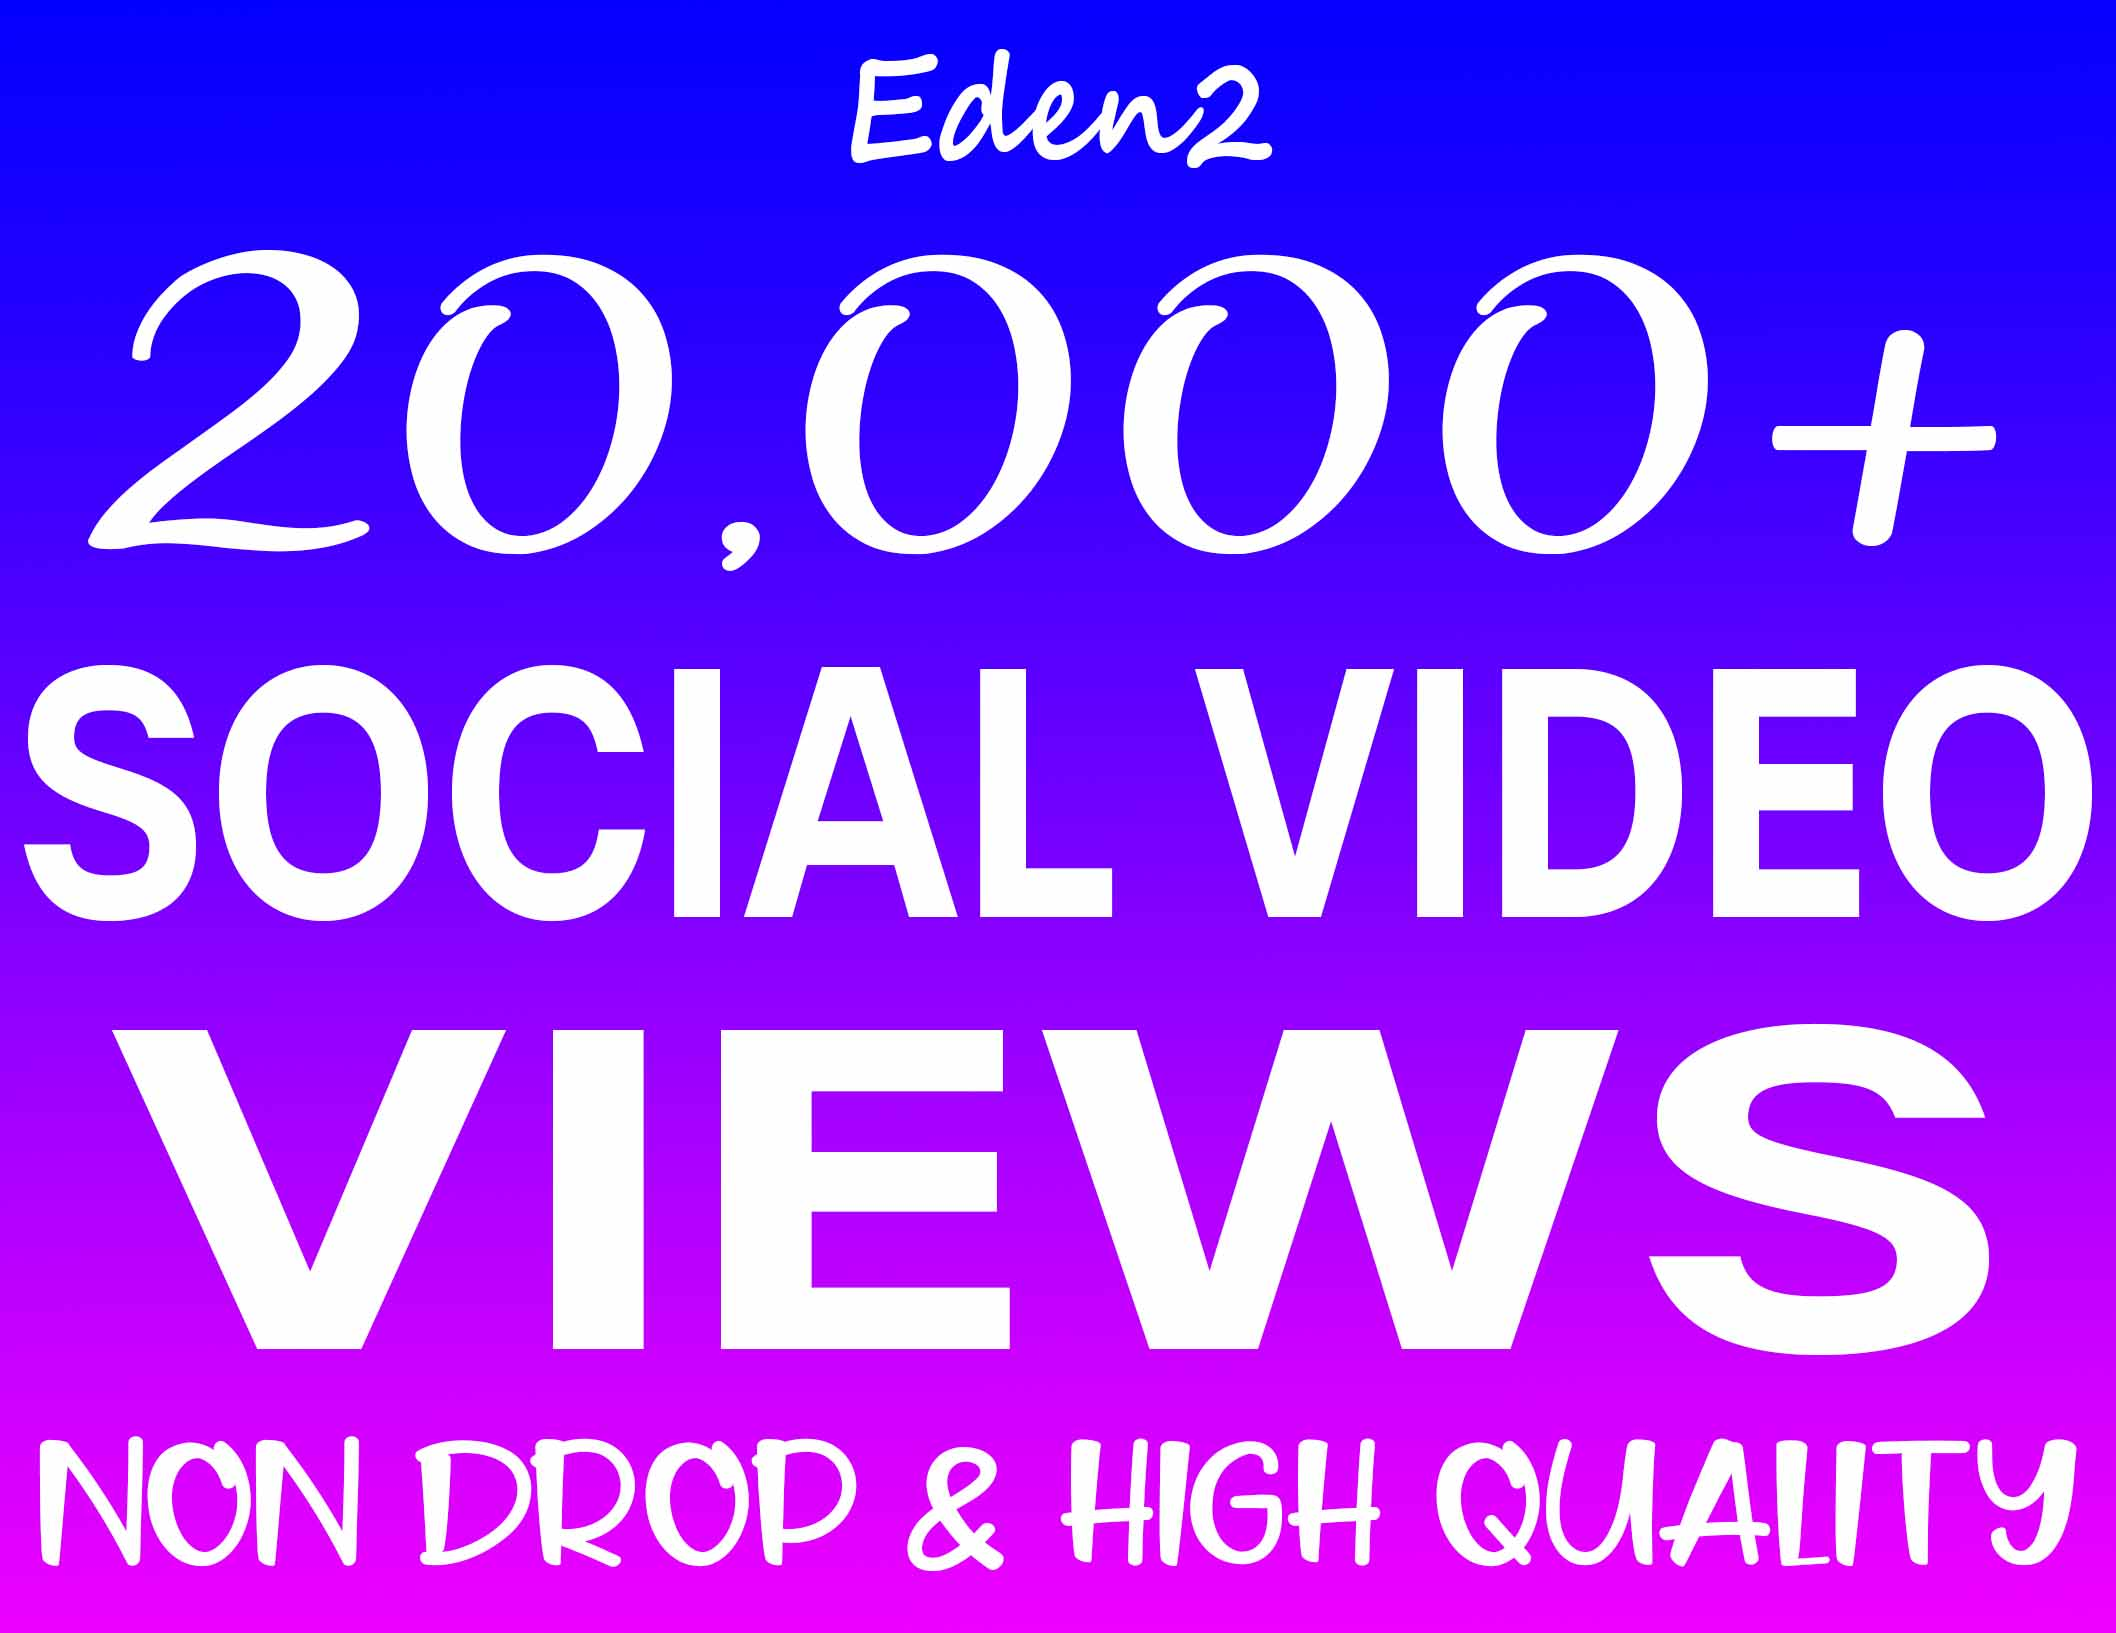 Add 20K Social Video Views Non Drop & High Quality - INSTANT START